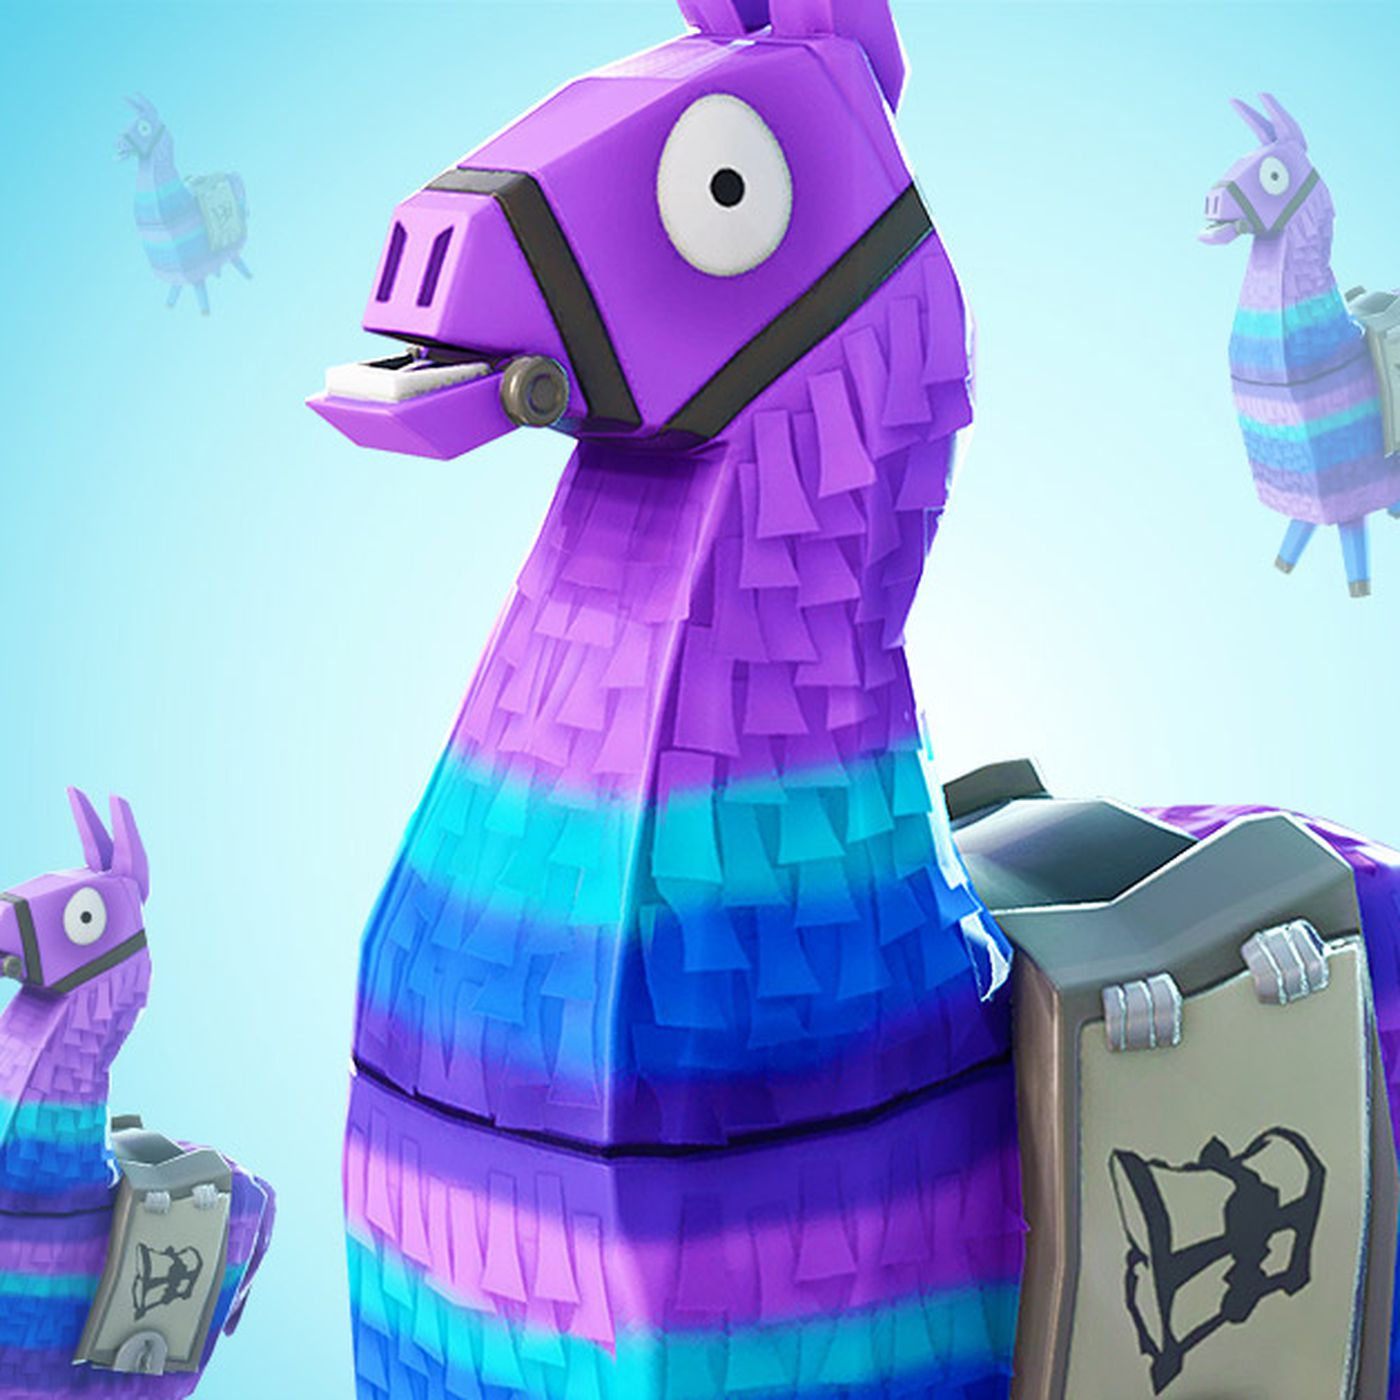 Fortnite Season 6 Hints Begin With Purple Dj Llama Skin Polygon